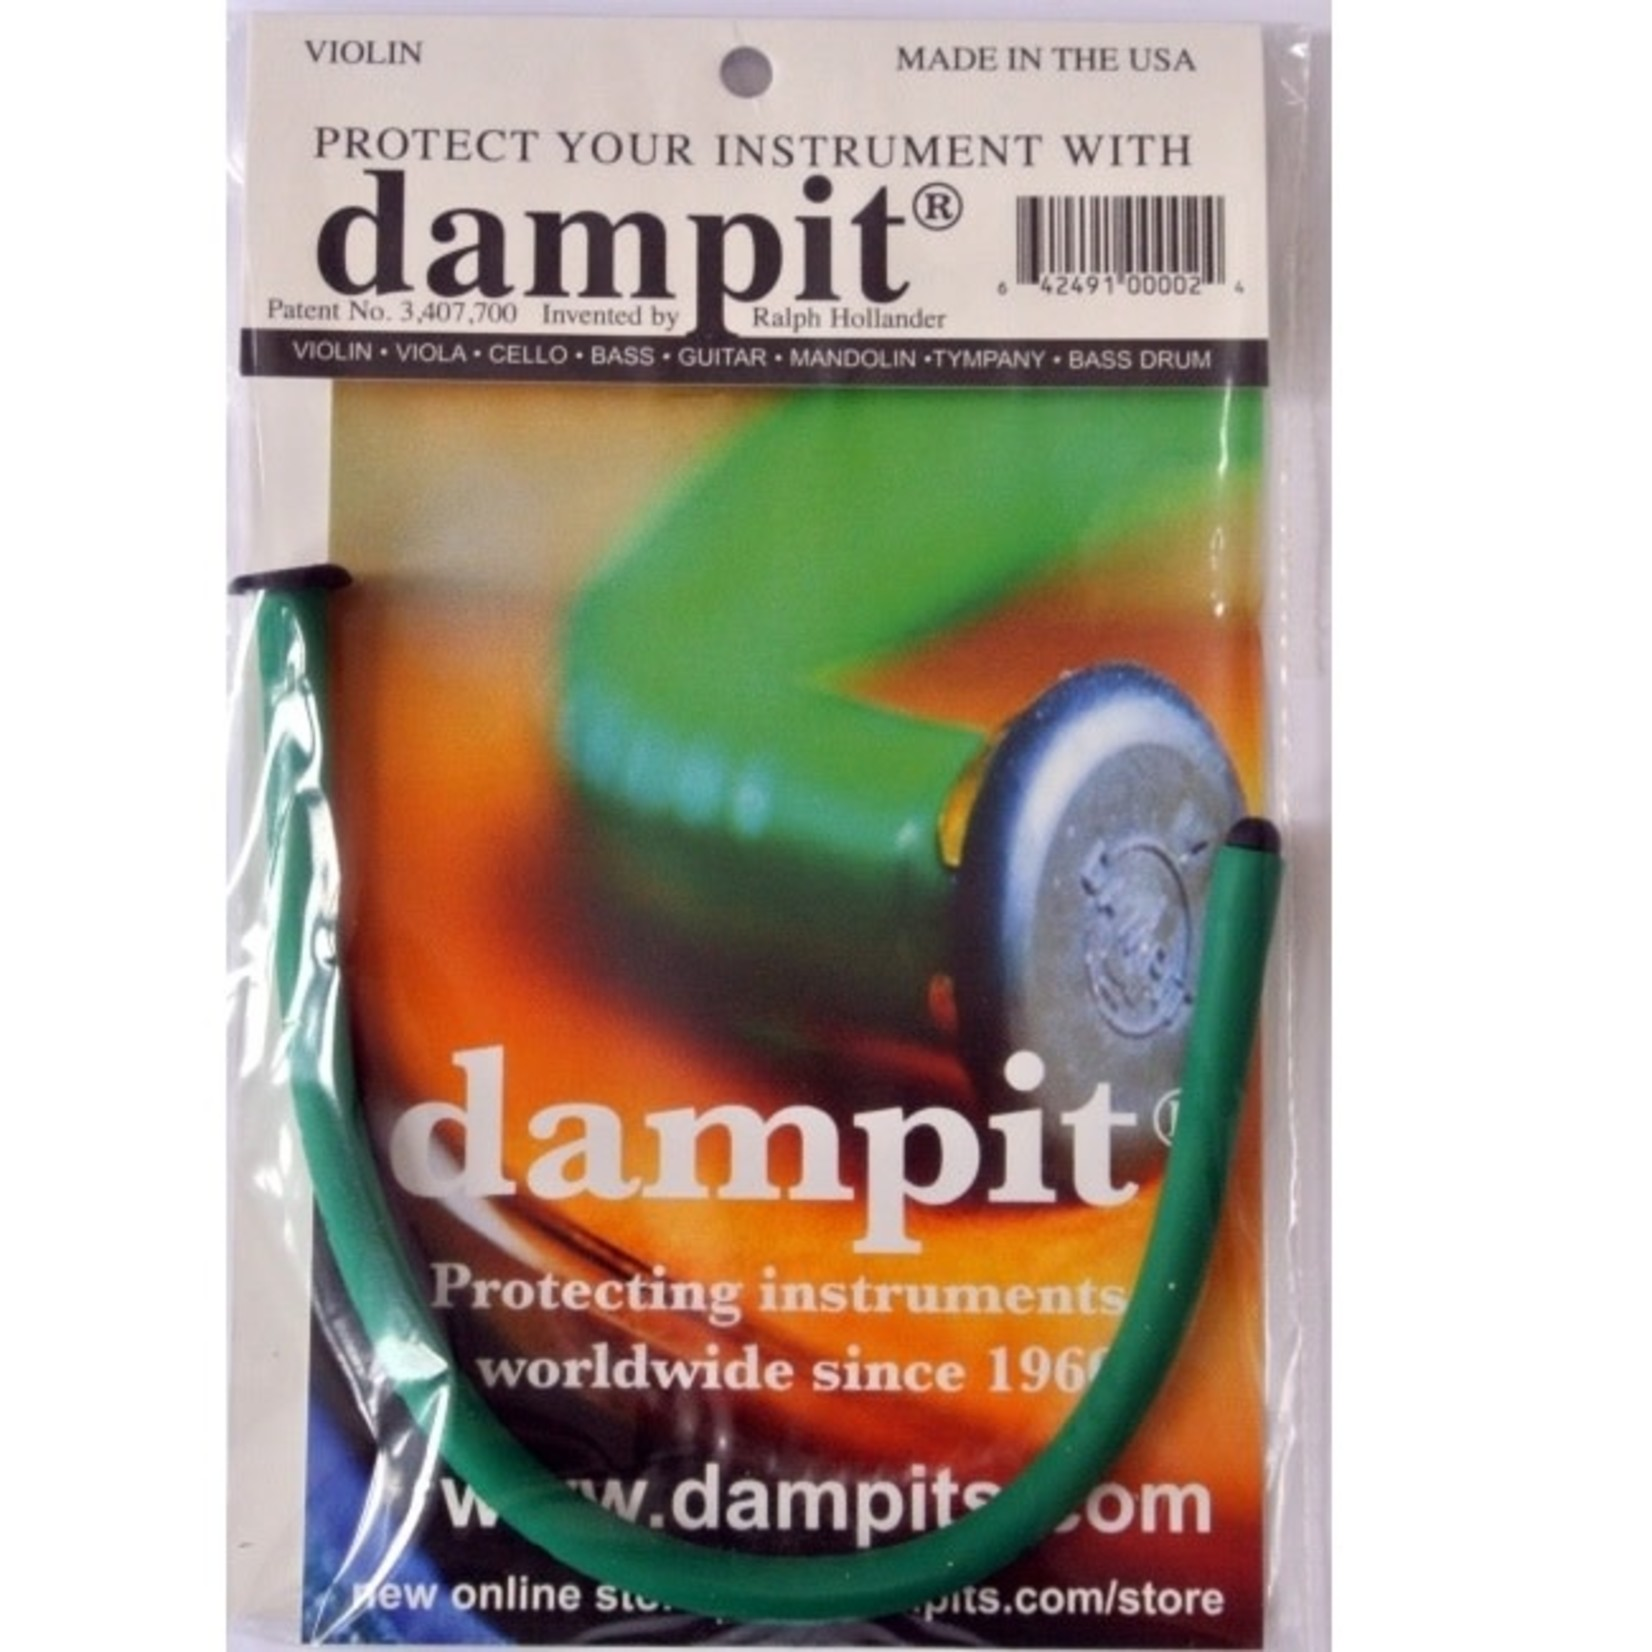 Humidificateur Vn Dampit